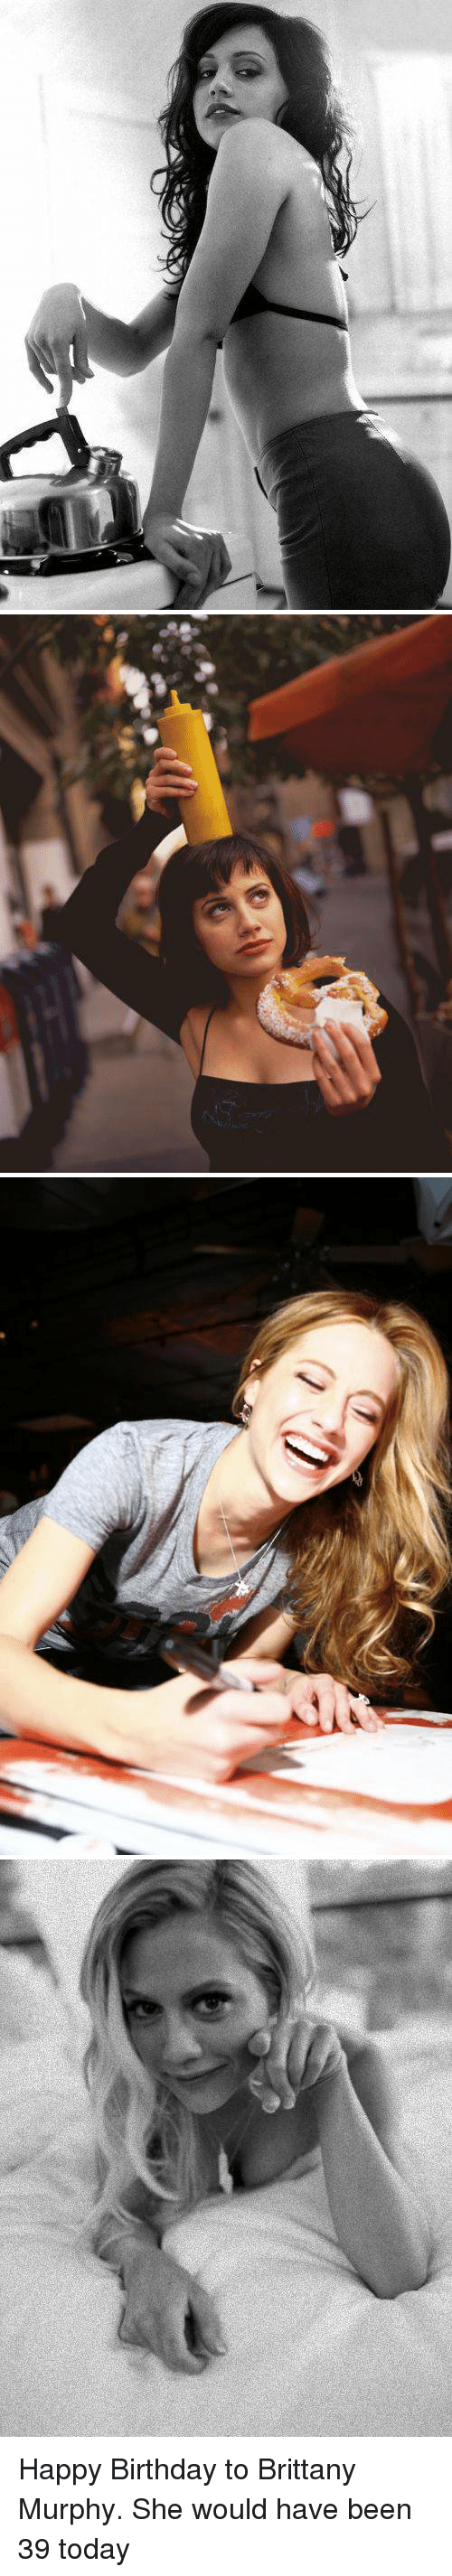 Birthday, Xxx, and Happy Birthday: Happy Birthday to Brittany Murphy. She would have been 39 today